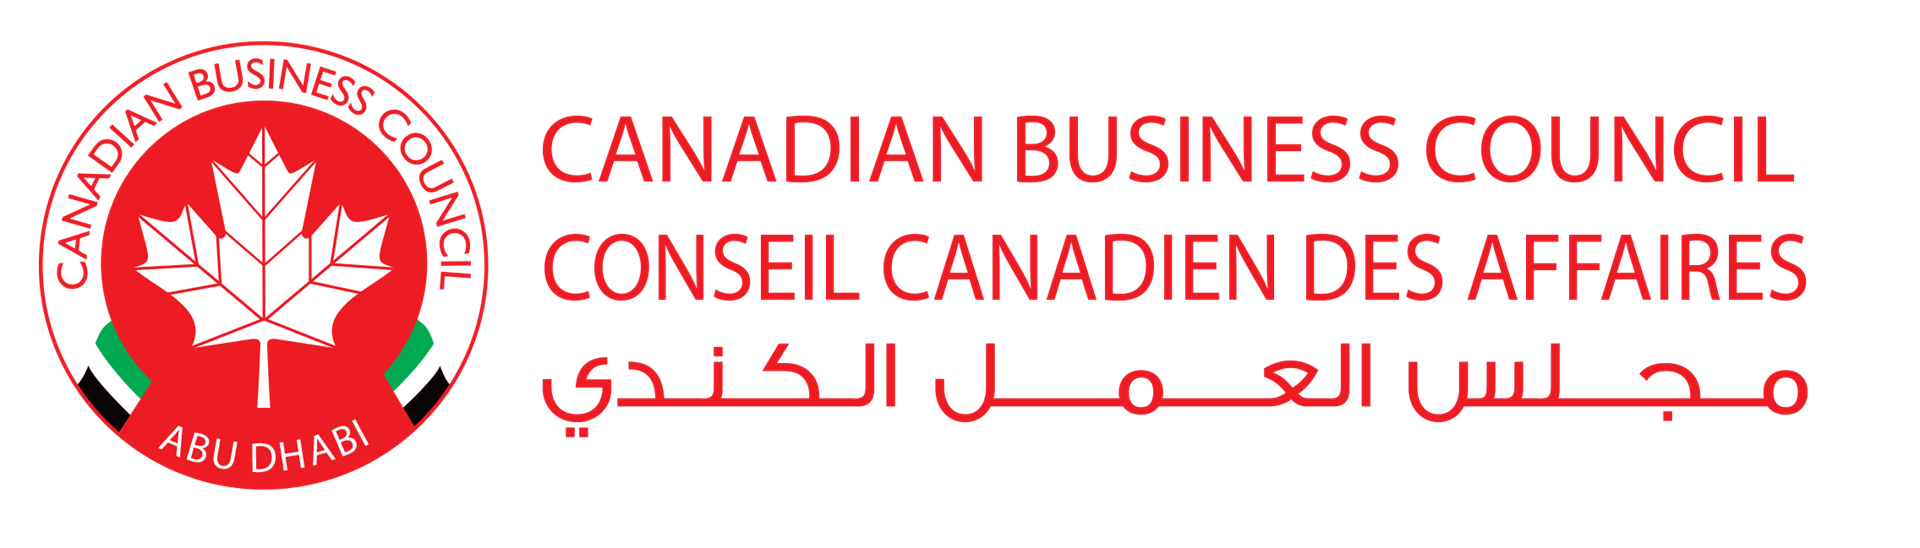 Canadian Business Council Abu Dhabi - Partners